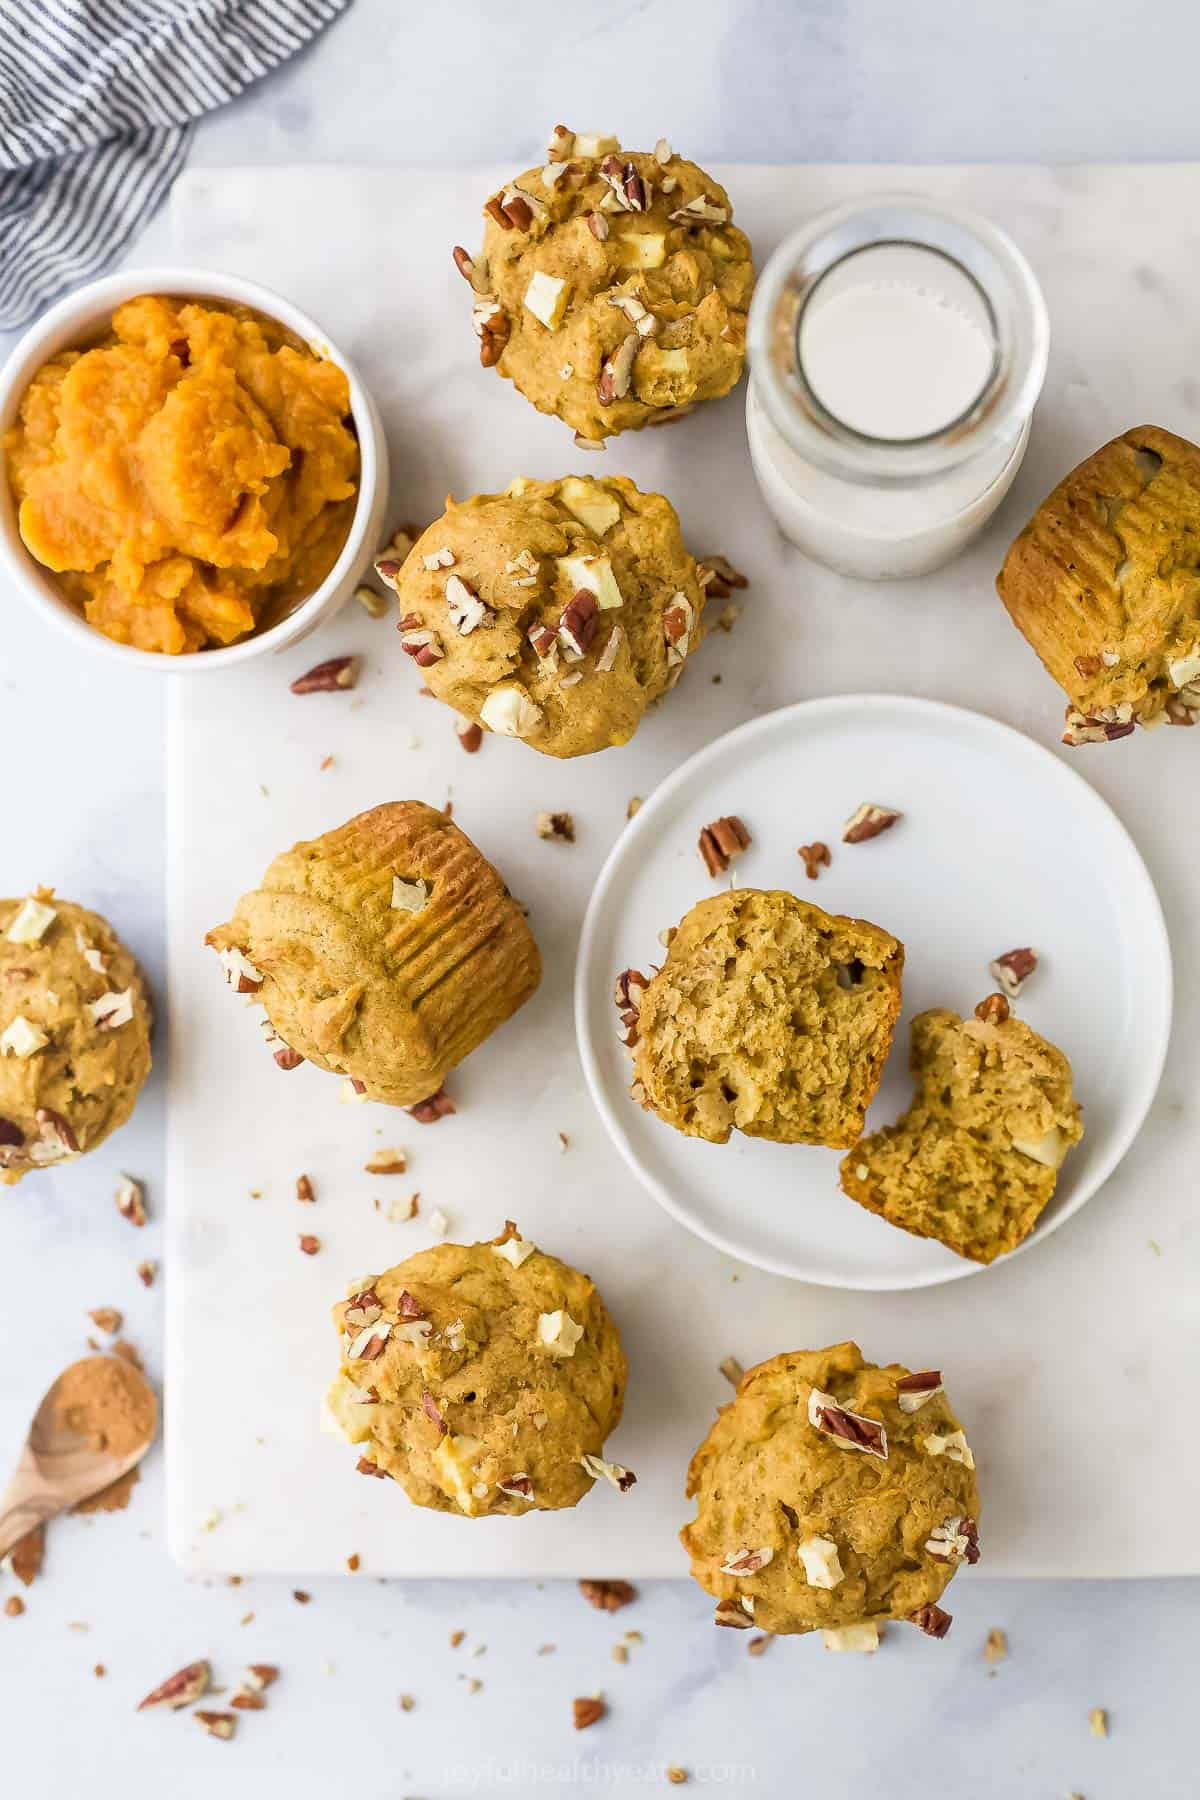 Apple pumpkin muffins scattered across a kitchen counter alongside a glass of milk and a bowl of pumpkin puree